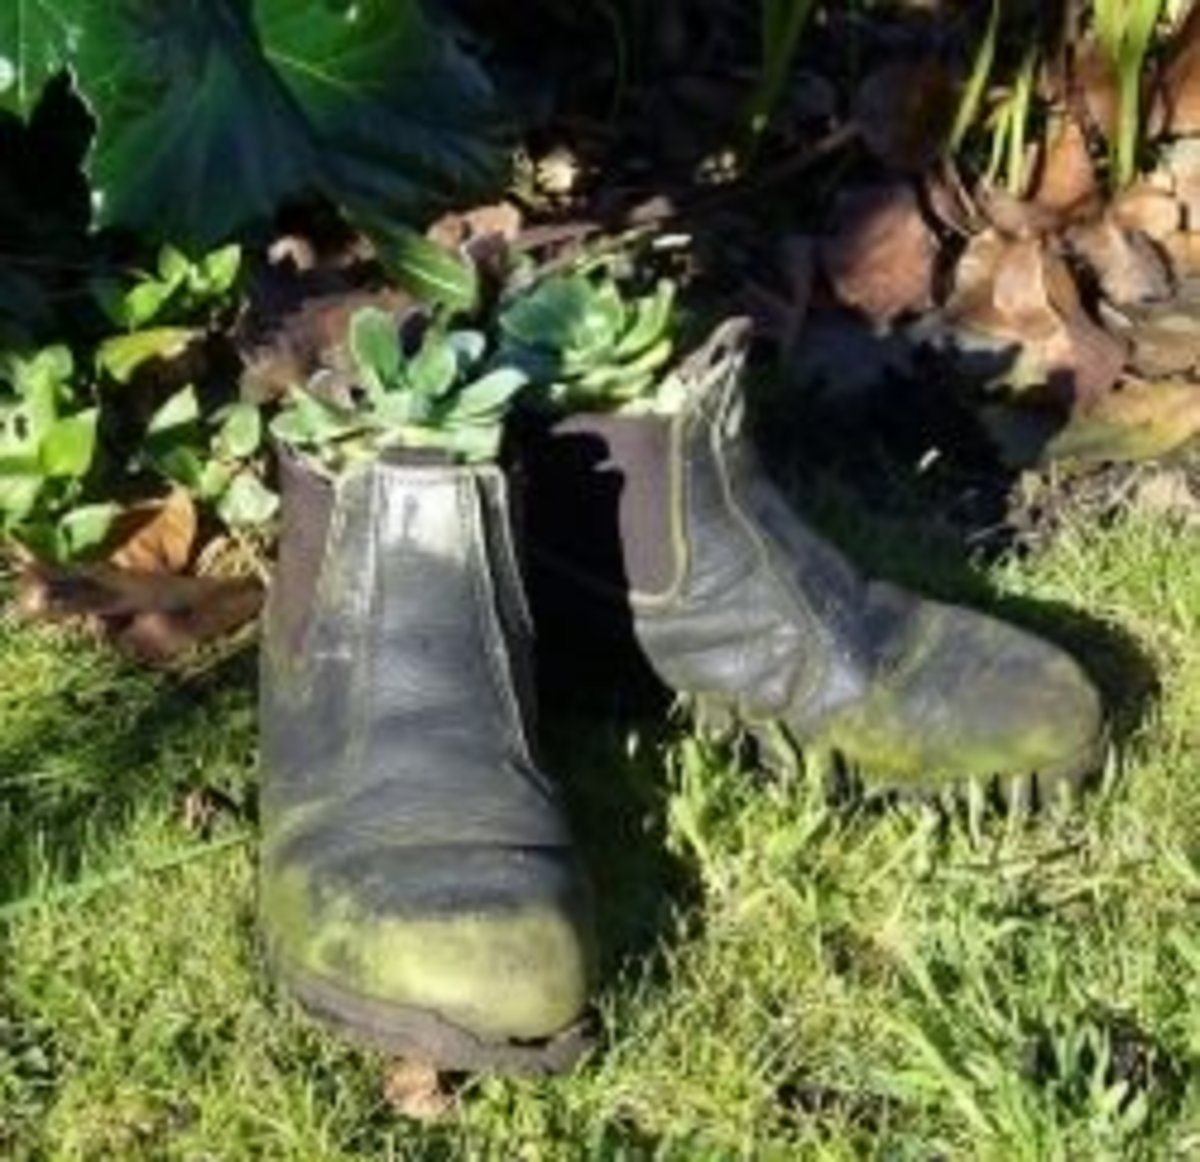 How to Make Flower Pots From Old Boots and Shoes